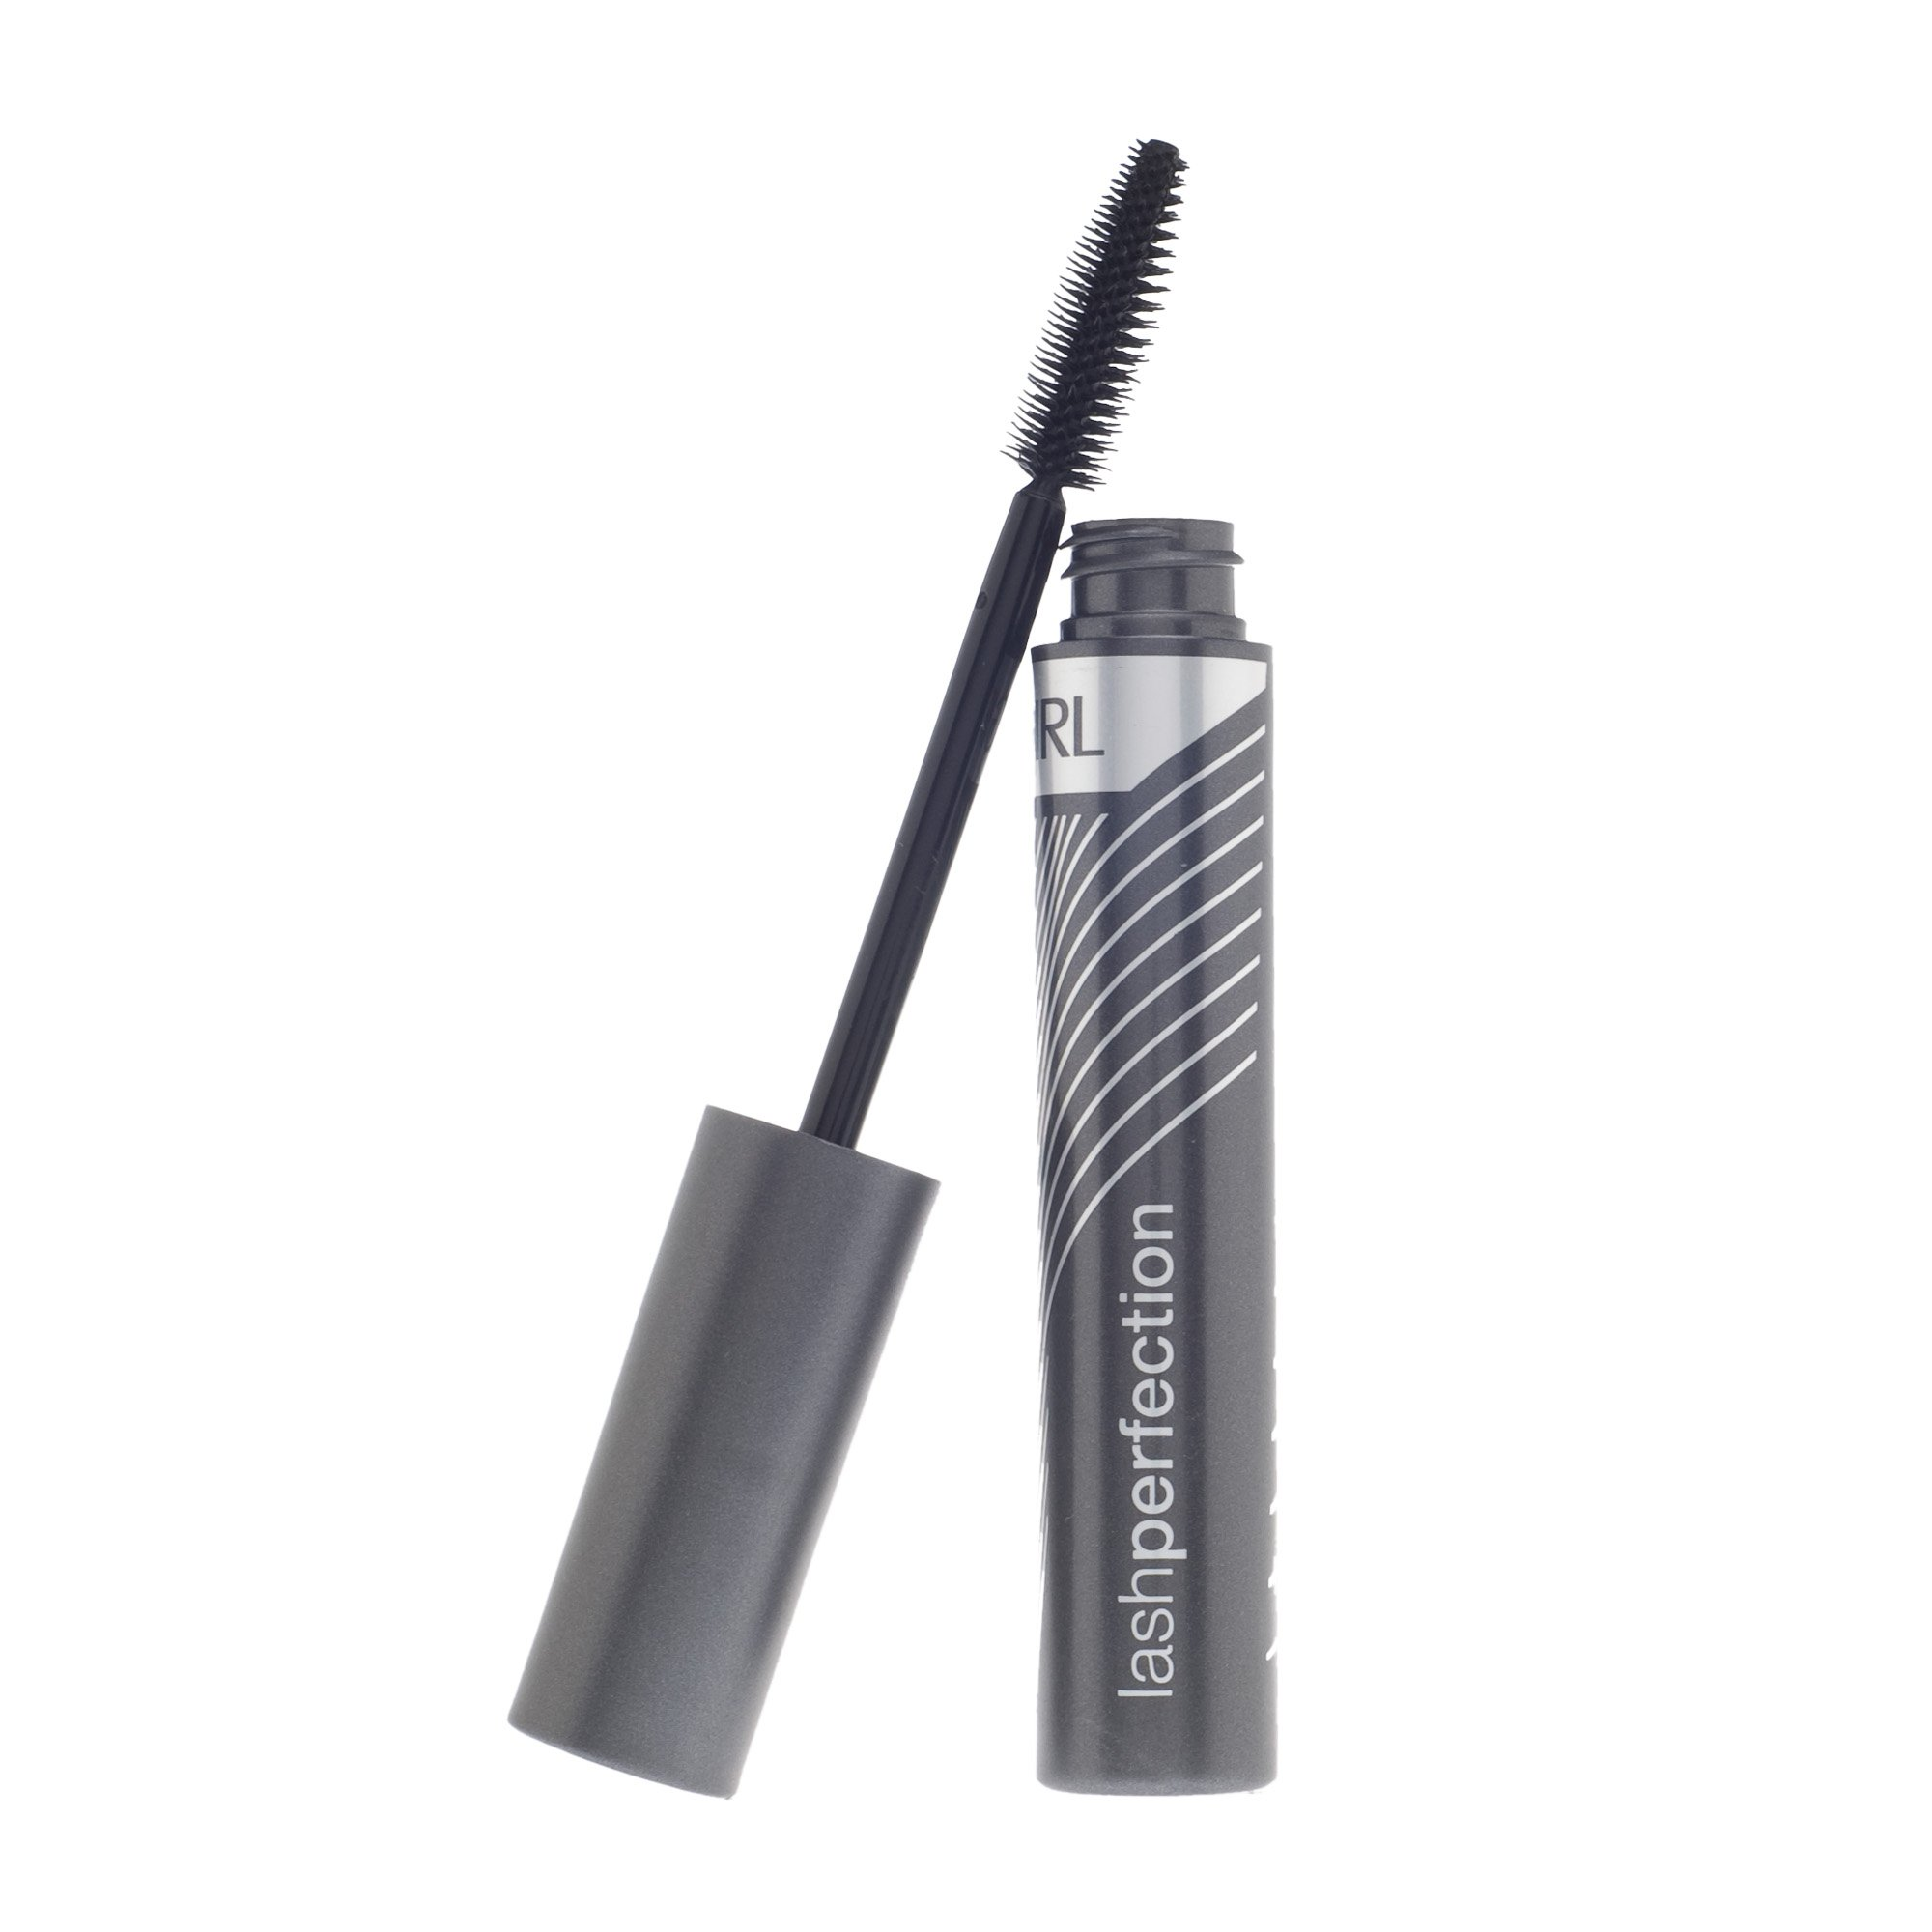 Covergirl Lashperfection Mascara, Brown 215, 0.2400-Ounce